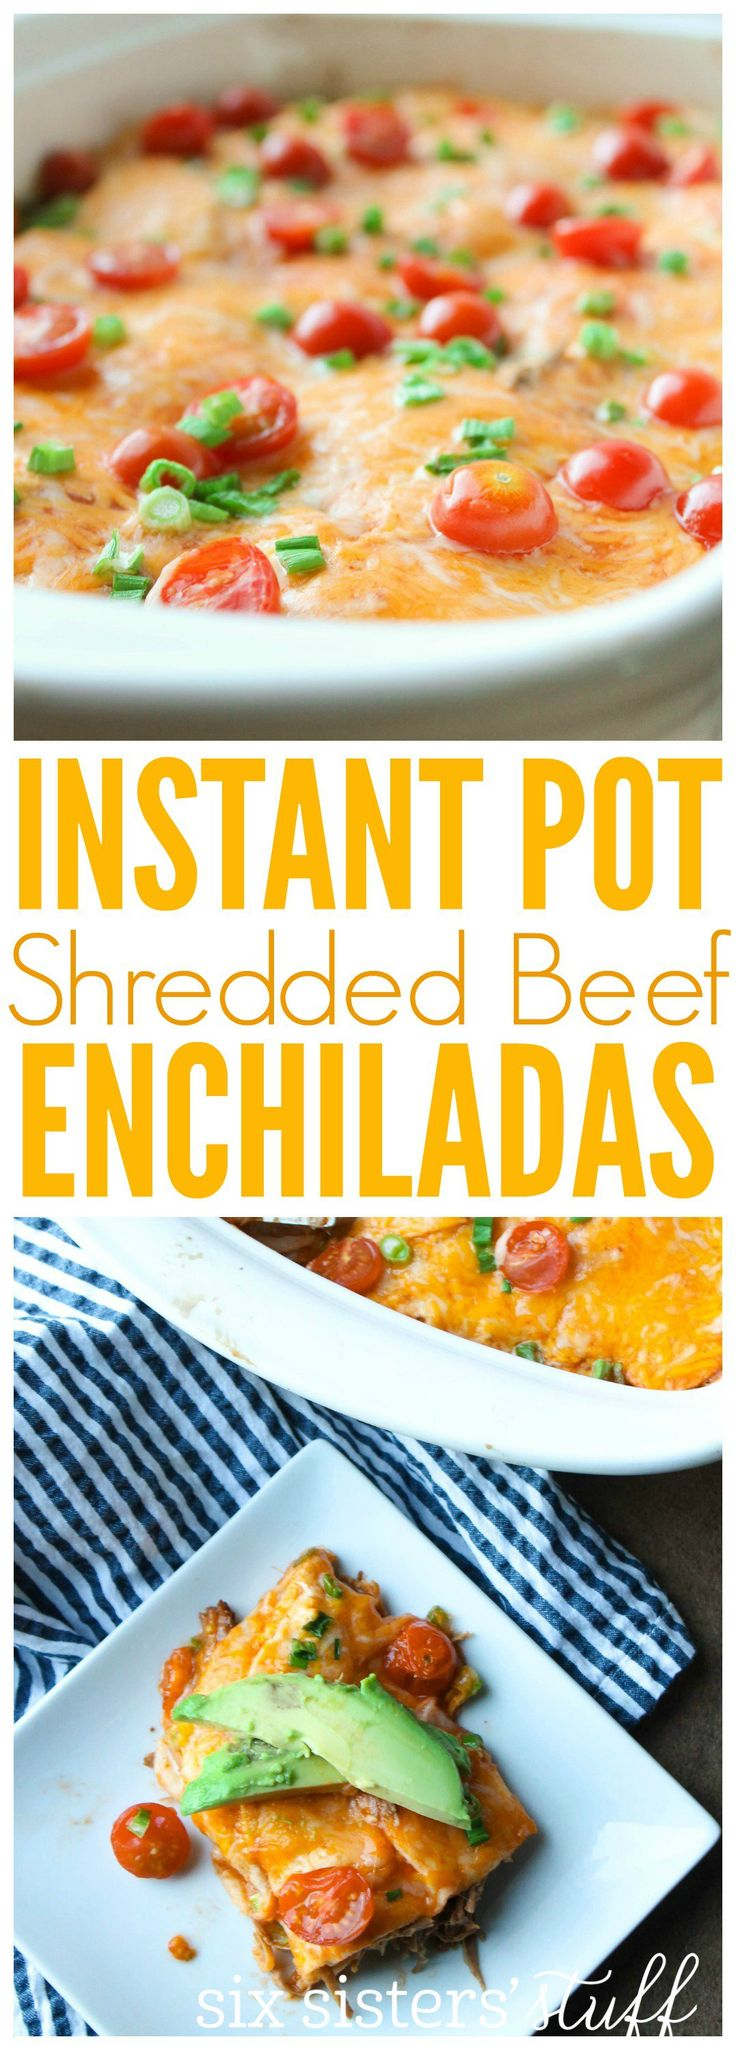 Instant Pot Shredded Beef Enchiladas from Six Sisters Stuff | Family Dinner Recipes | Family Meal Ideas | Best Instant Pot Recipes